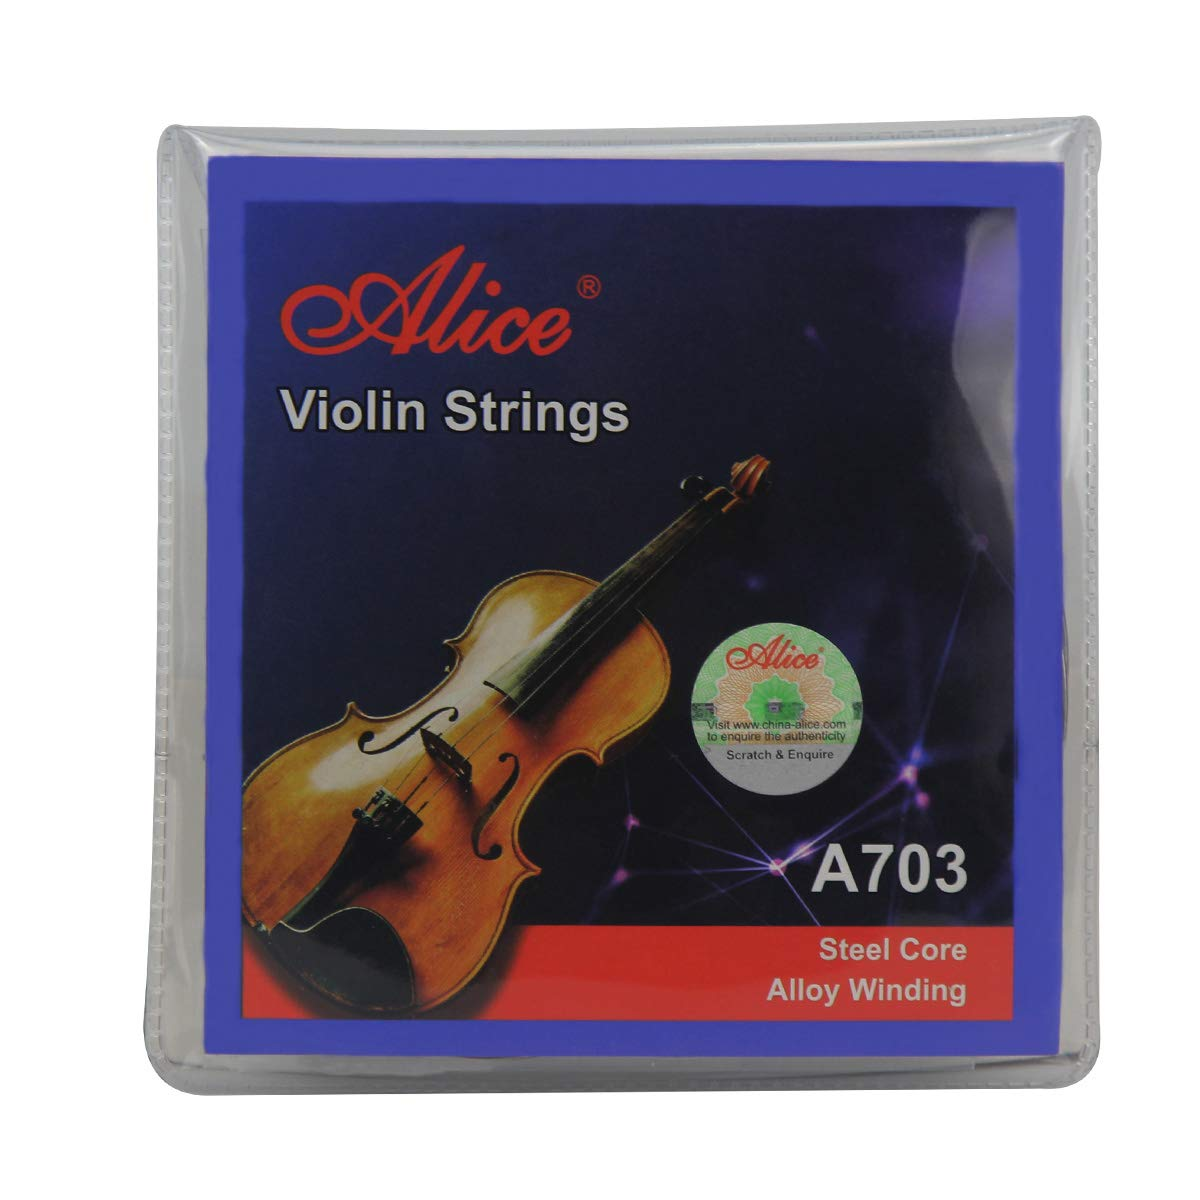 Alice Violin String Set E/a/d/g Violin Strings for Size 1/4 1/2 3/4 4/4 Set Ball product image